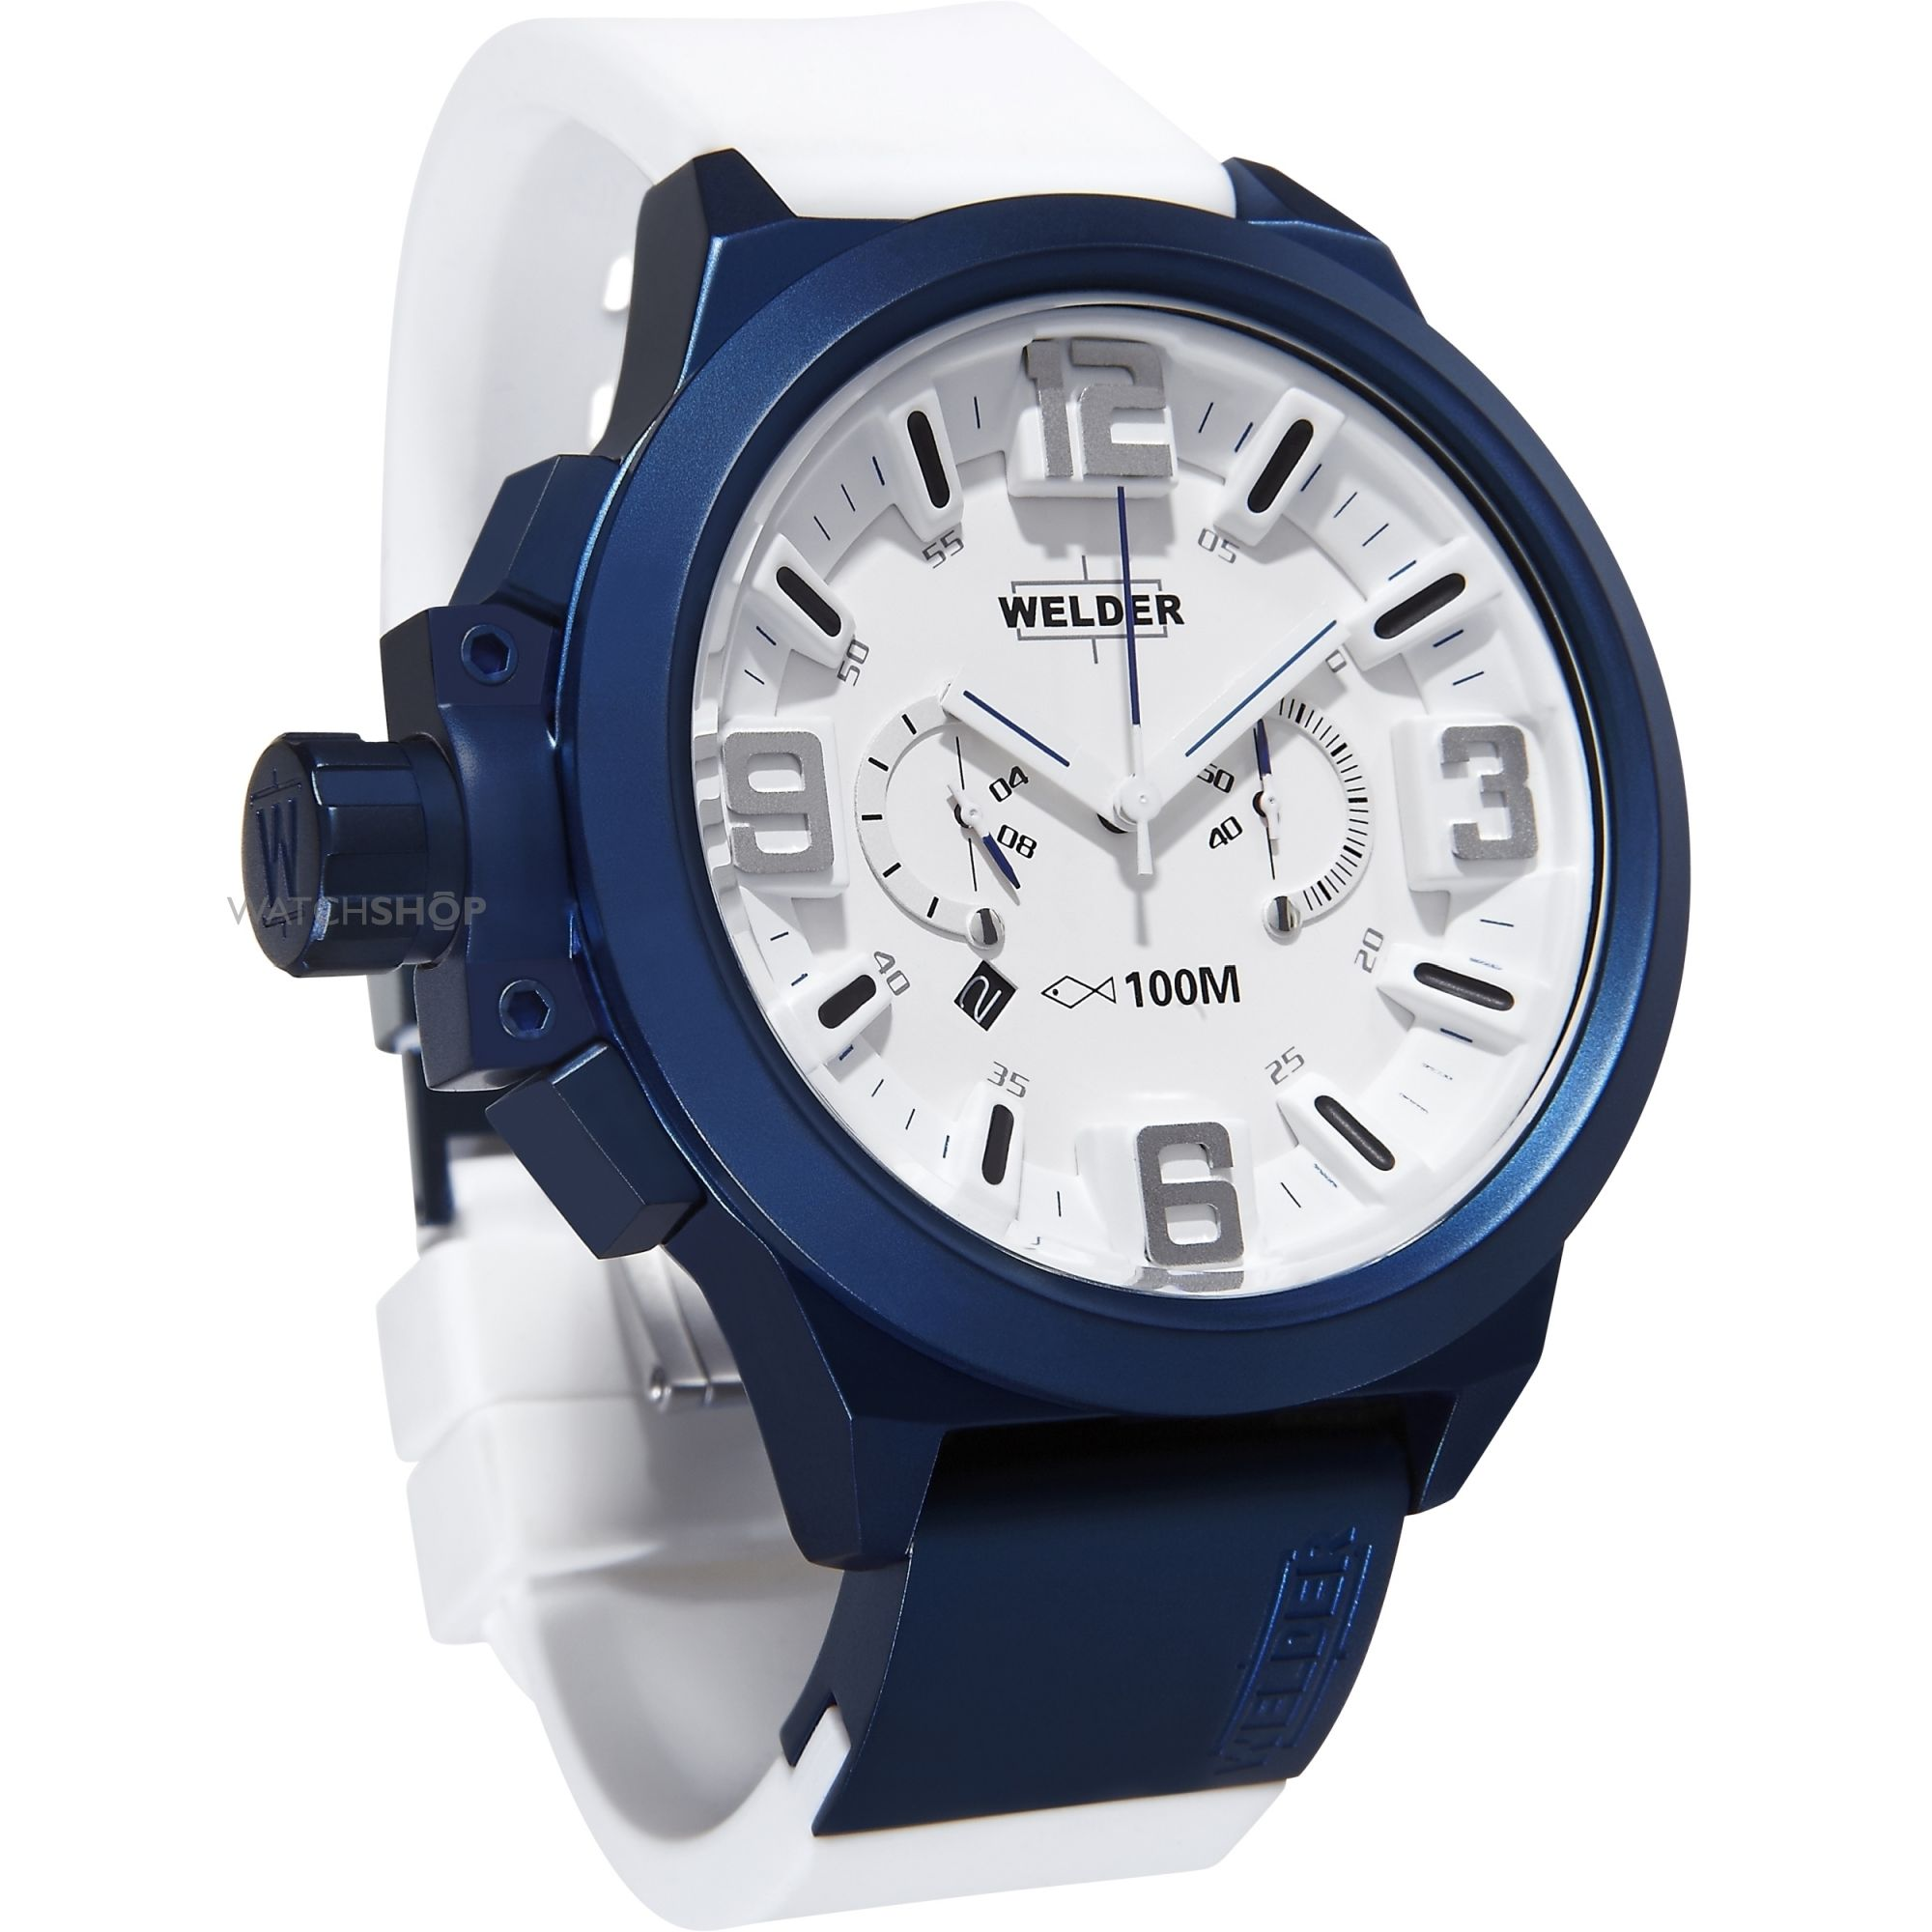 Buy Watches Online: Buy watches online cheap in Austria